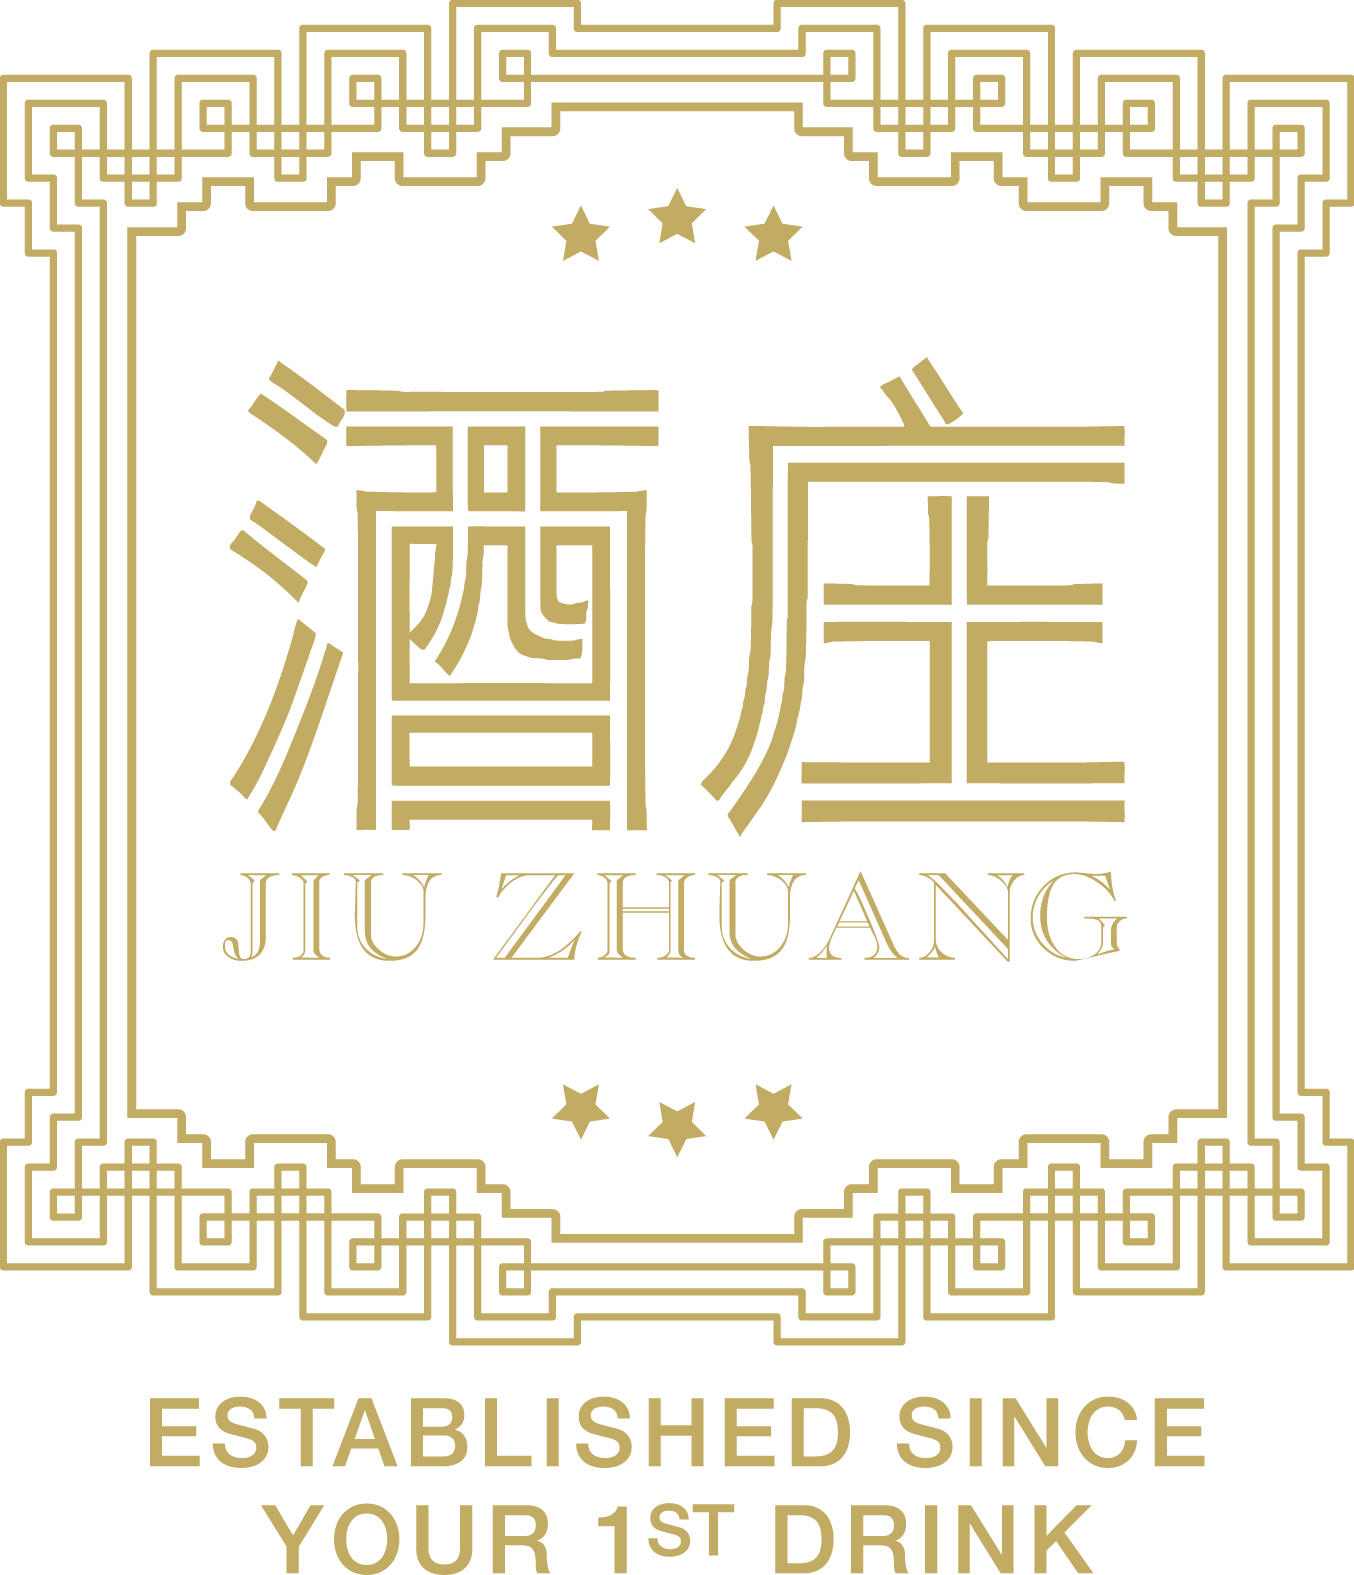 酒庄 Jiu Zhuang | Established Since Your First Drink